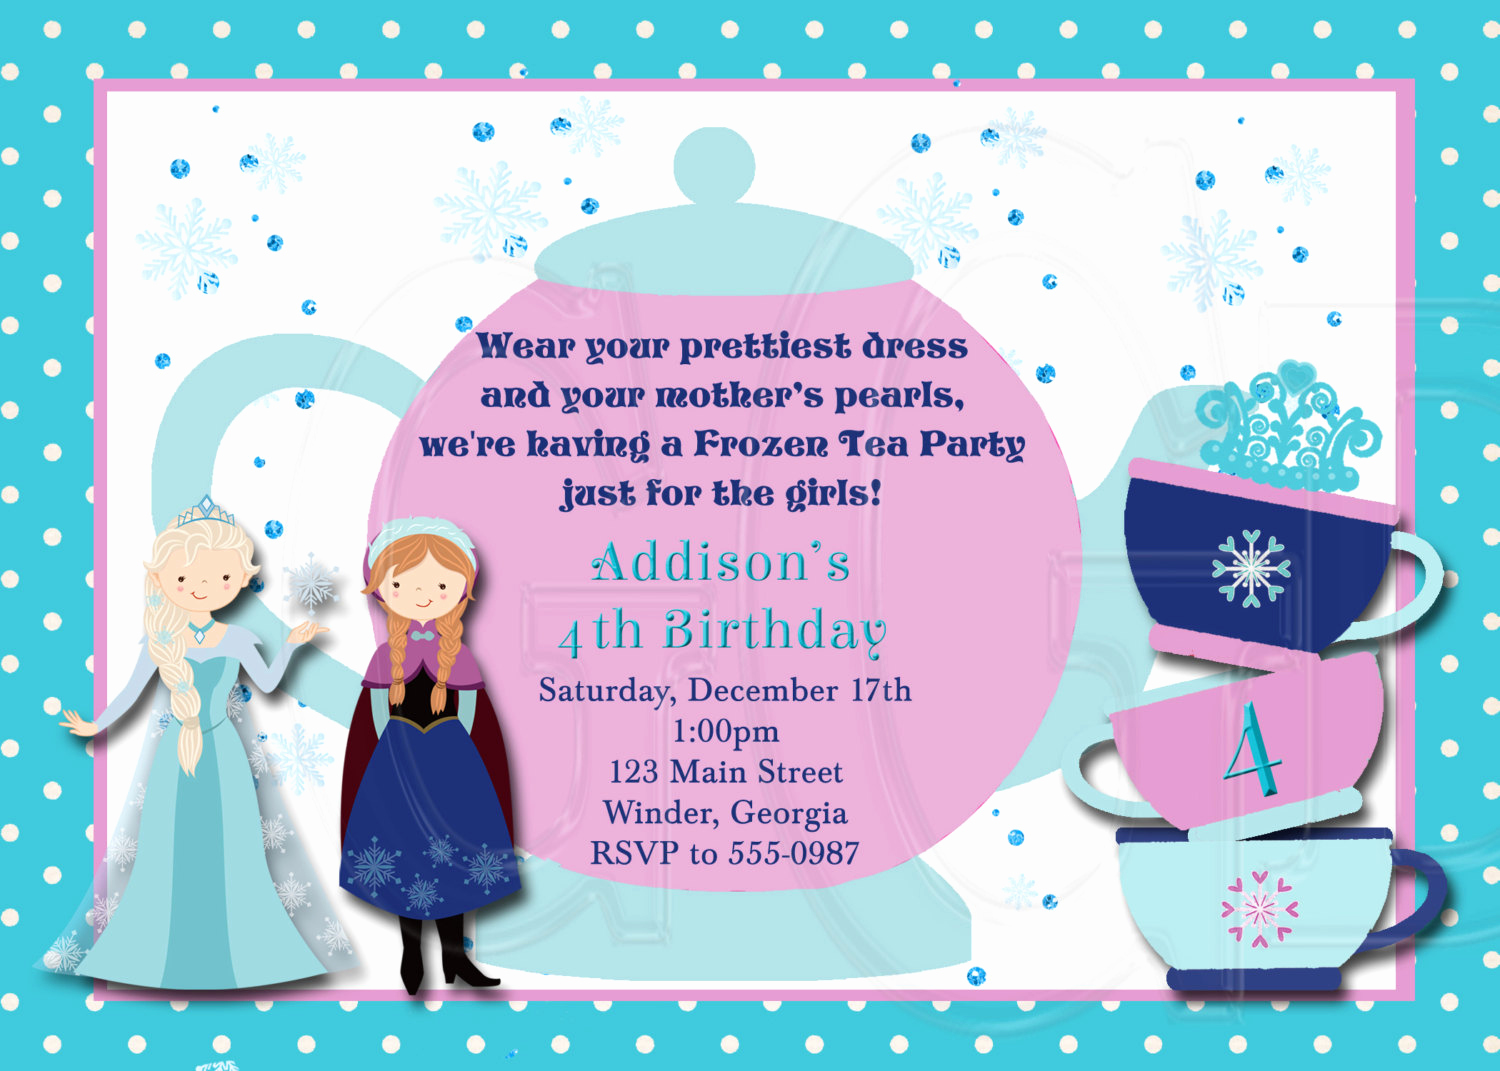 Princess Party Invitation Wording Awesome Ice Princess Tea Party Invitation Birthday Digital File